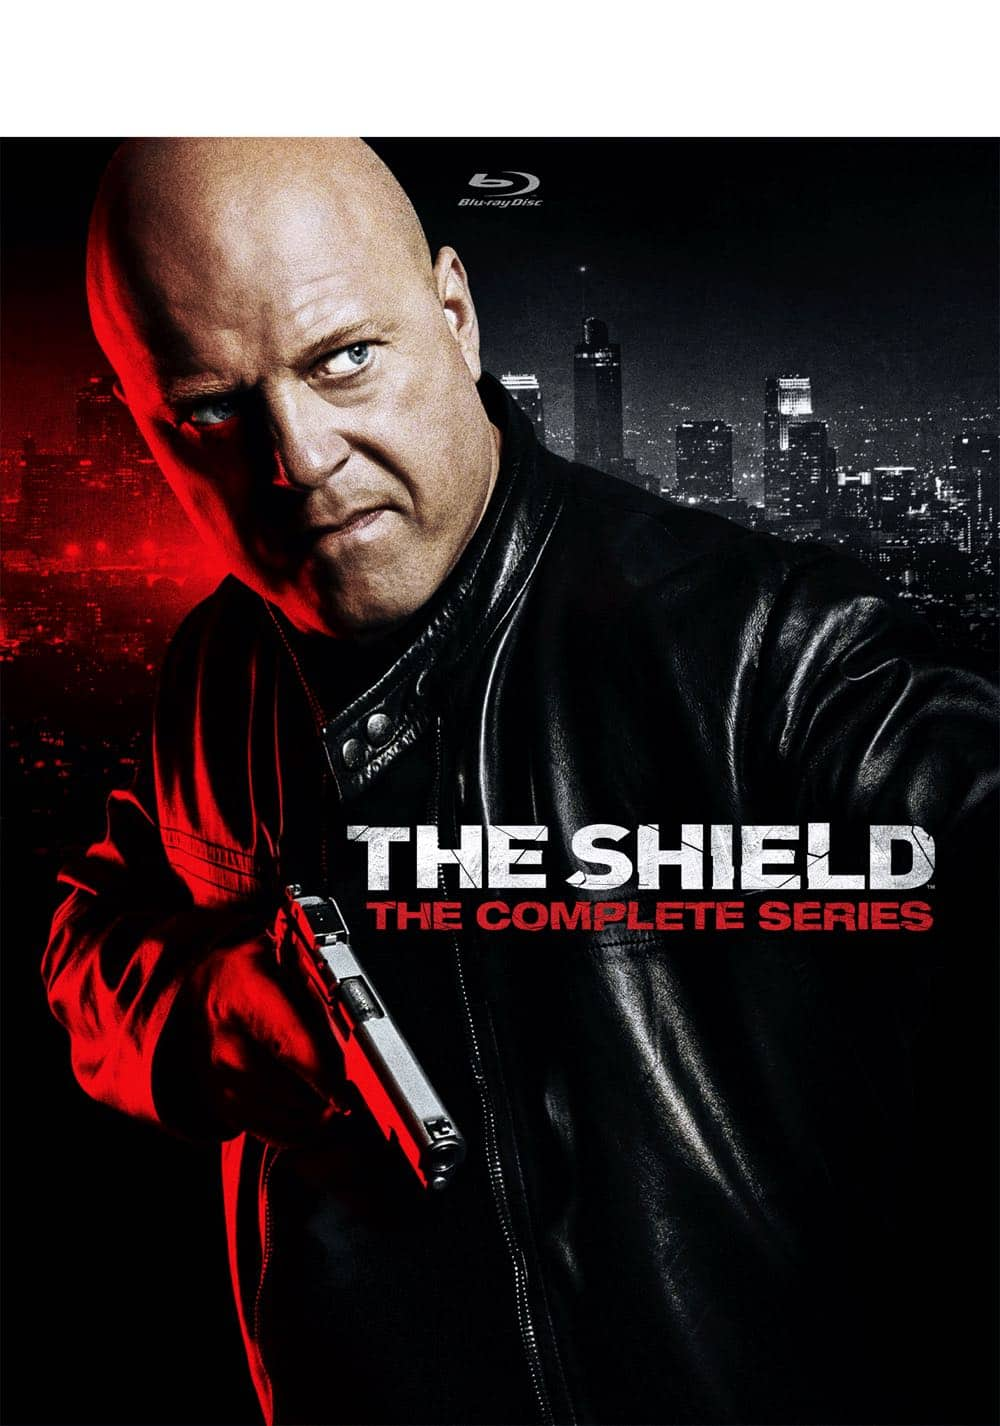 THE SHIELD The Complete Series Blu-ray Collector's Edition Release